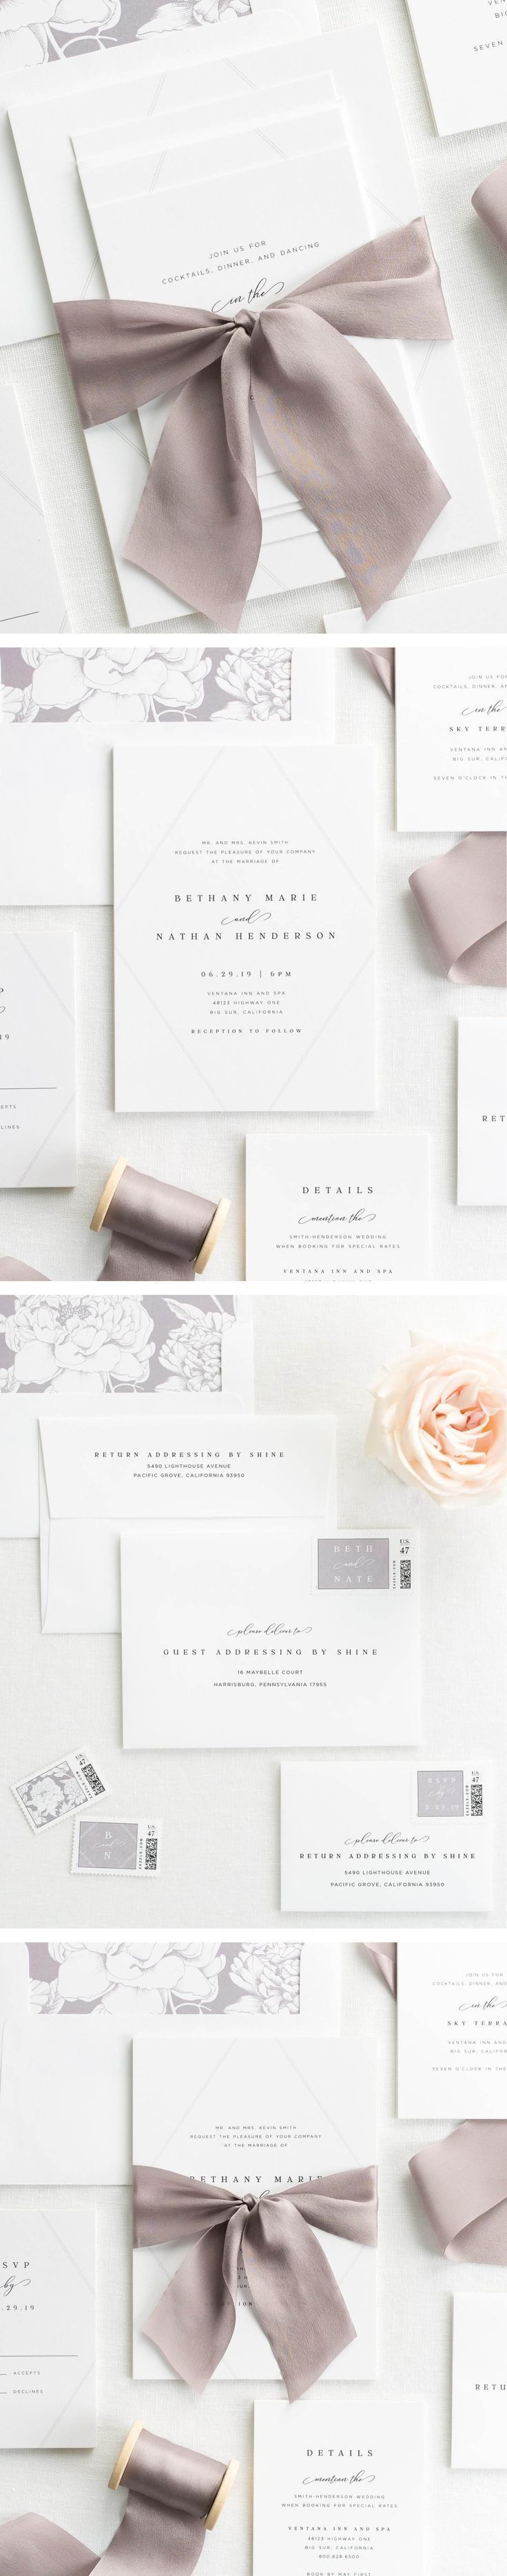 The Bethany wedding invitation collection is perfect for any cool and contemporary wedding. #weddinginvitation